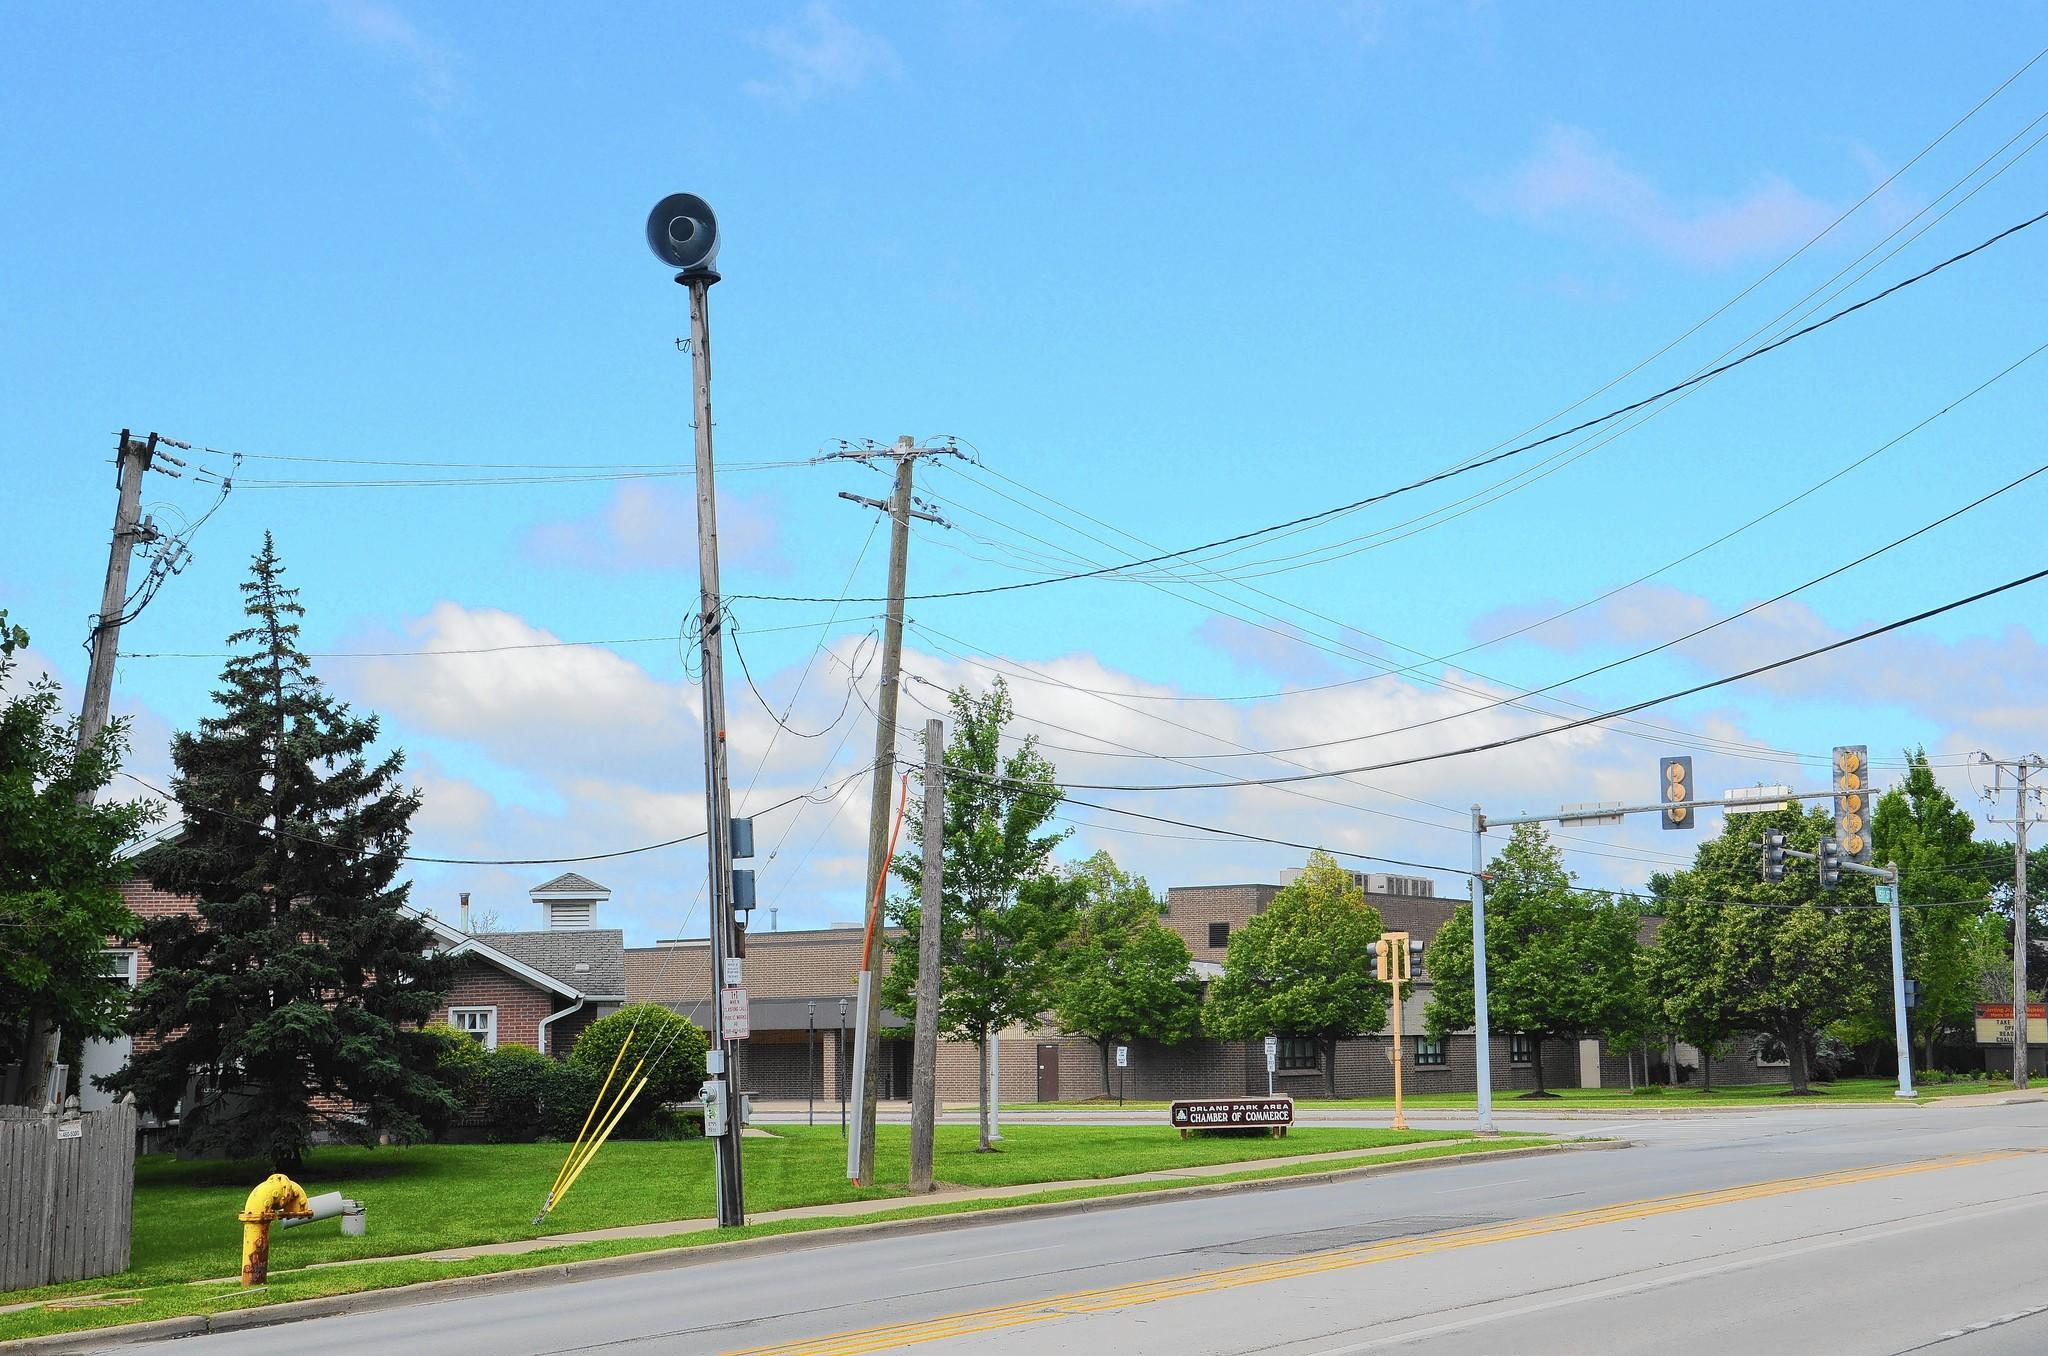 Some residents questioned why the village didn't sound its tornado sirens during last week's storm, police and village officials said.